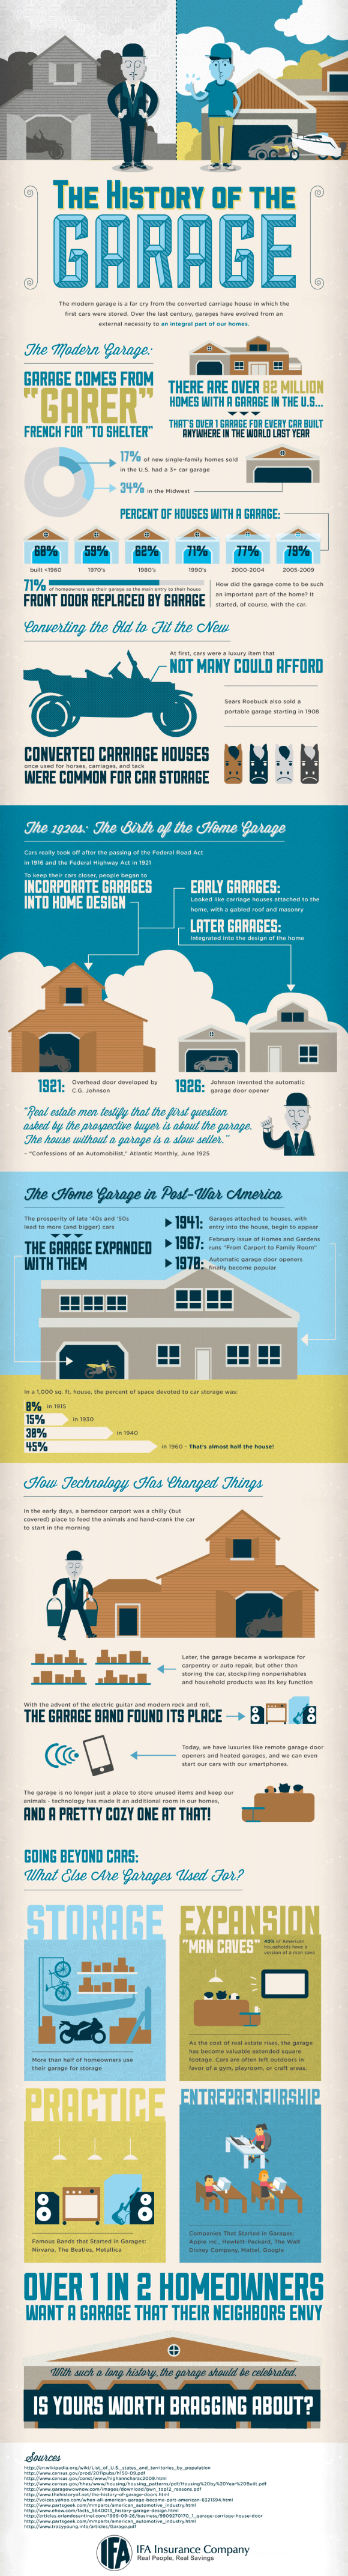 history-of-the-garage